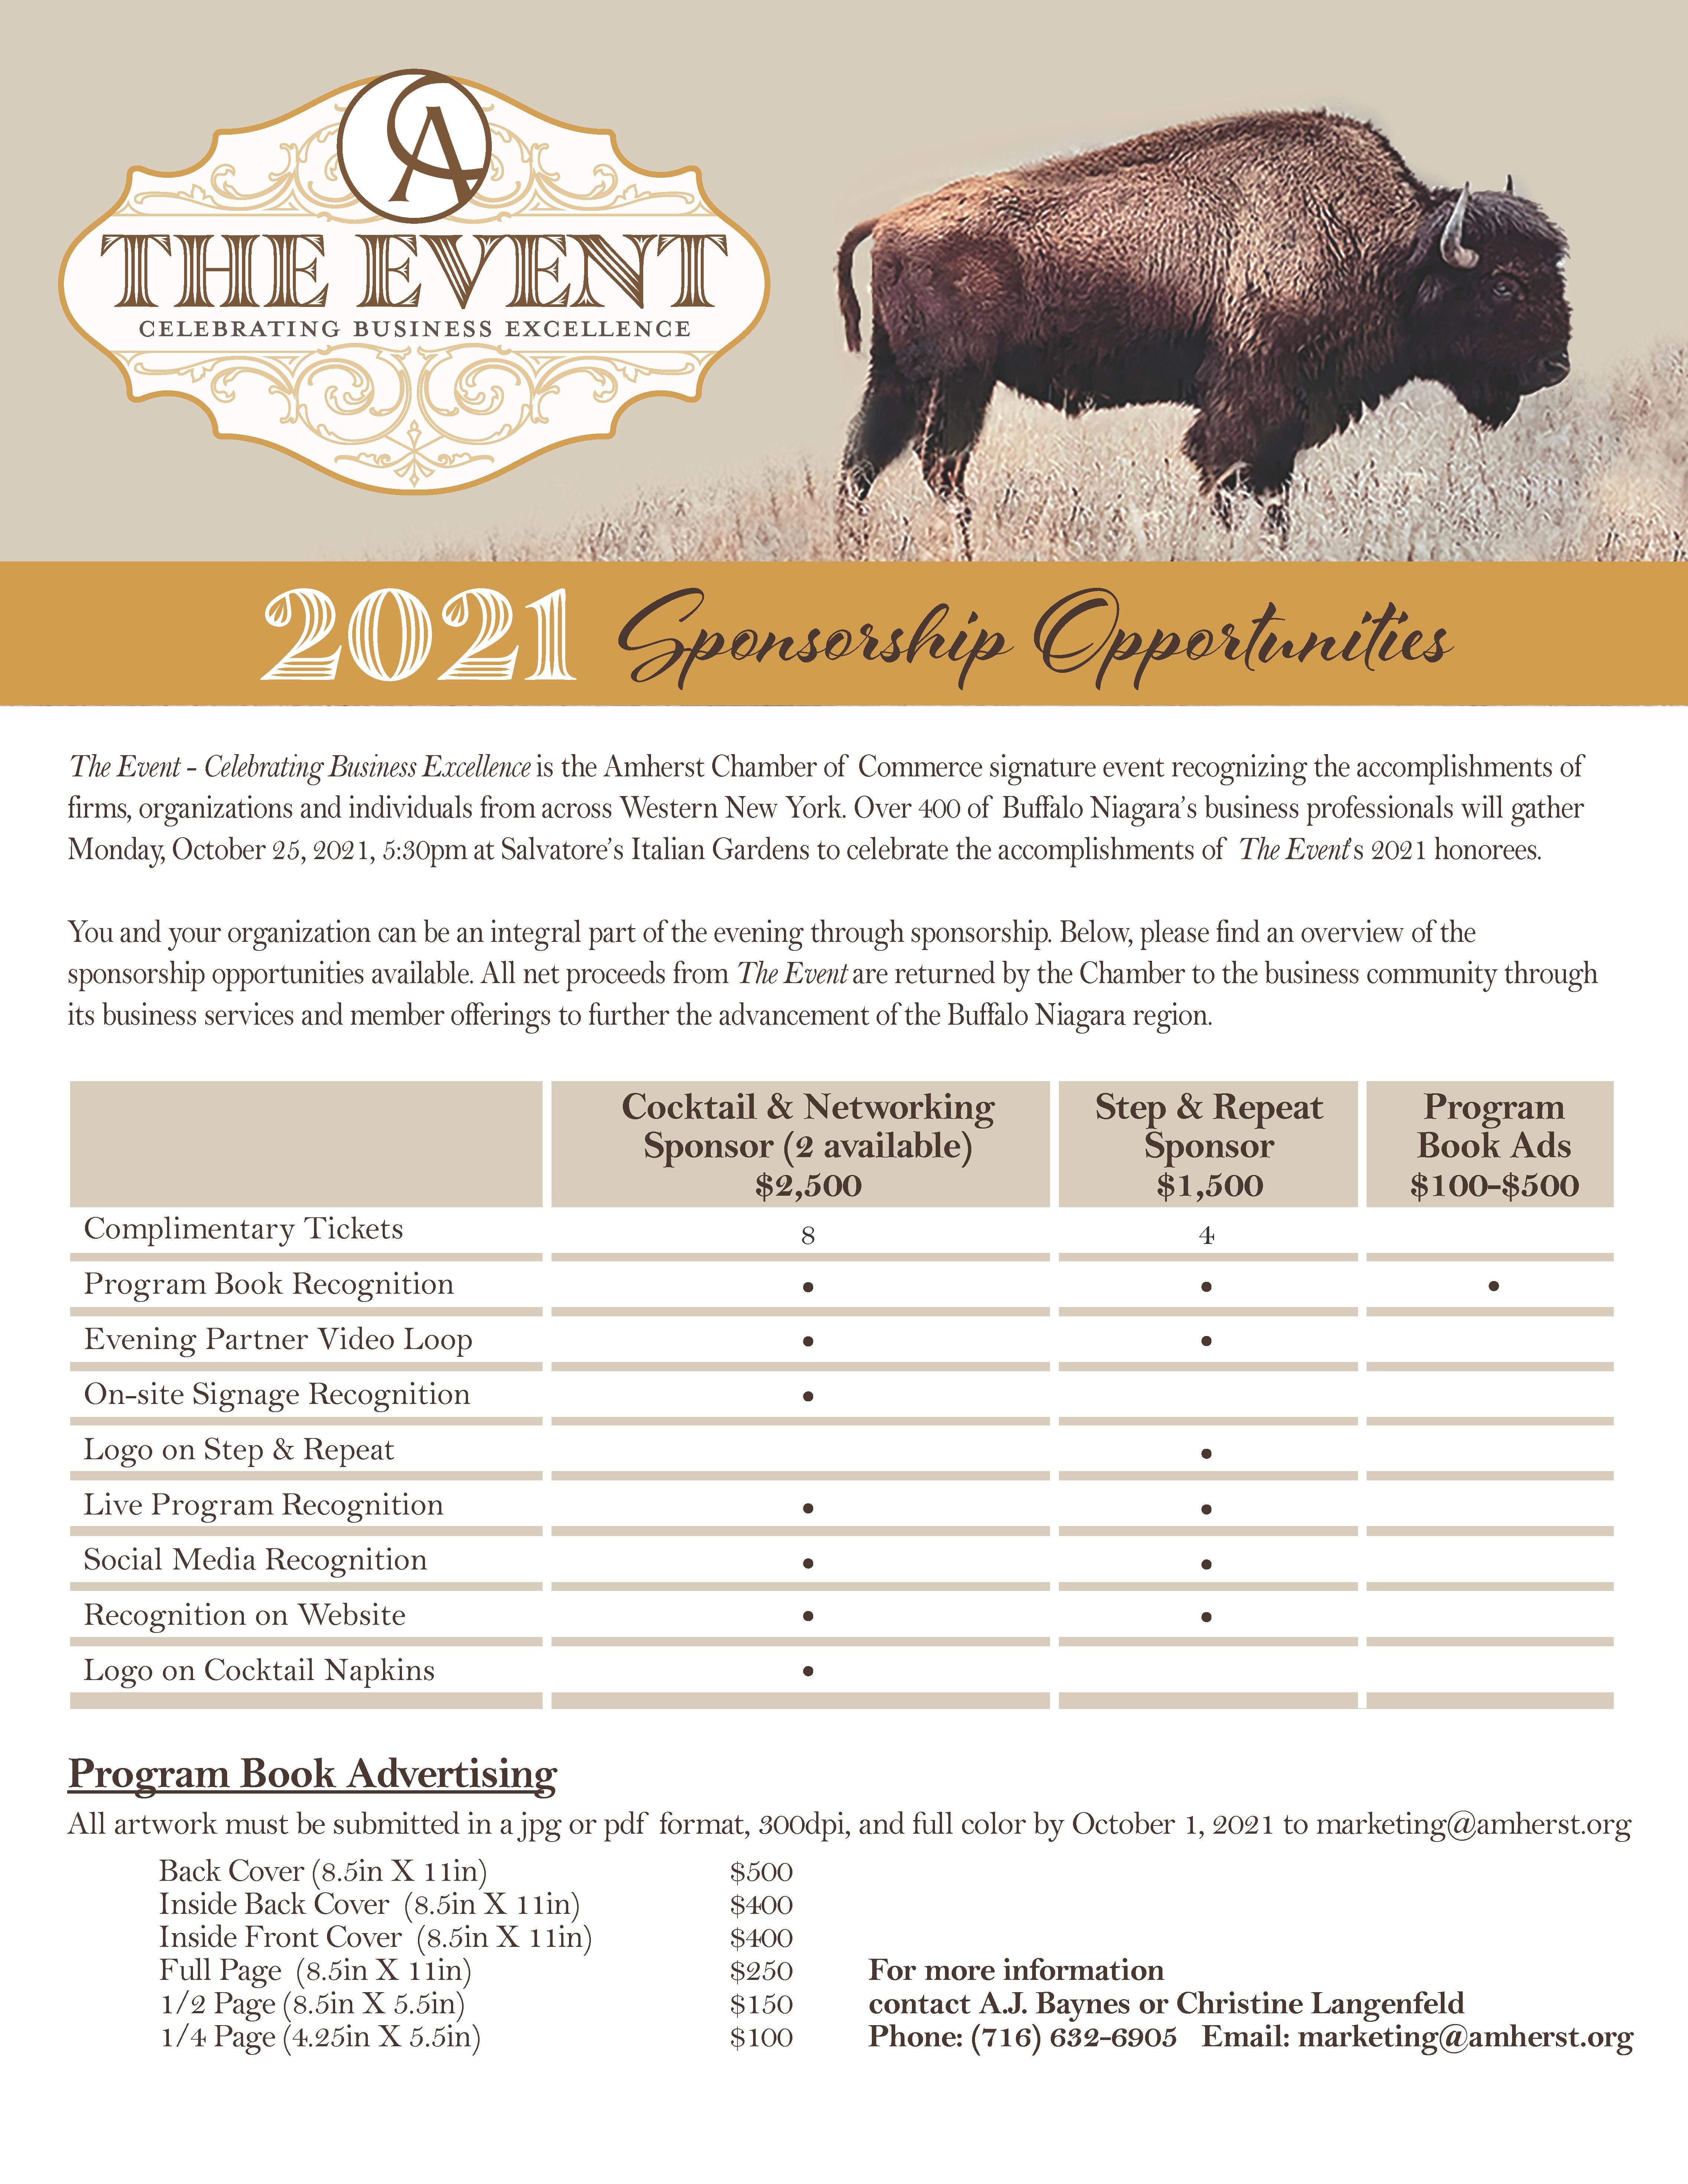 The Event 2021 Sponsorship Opportunities